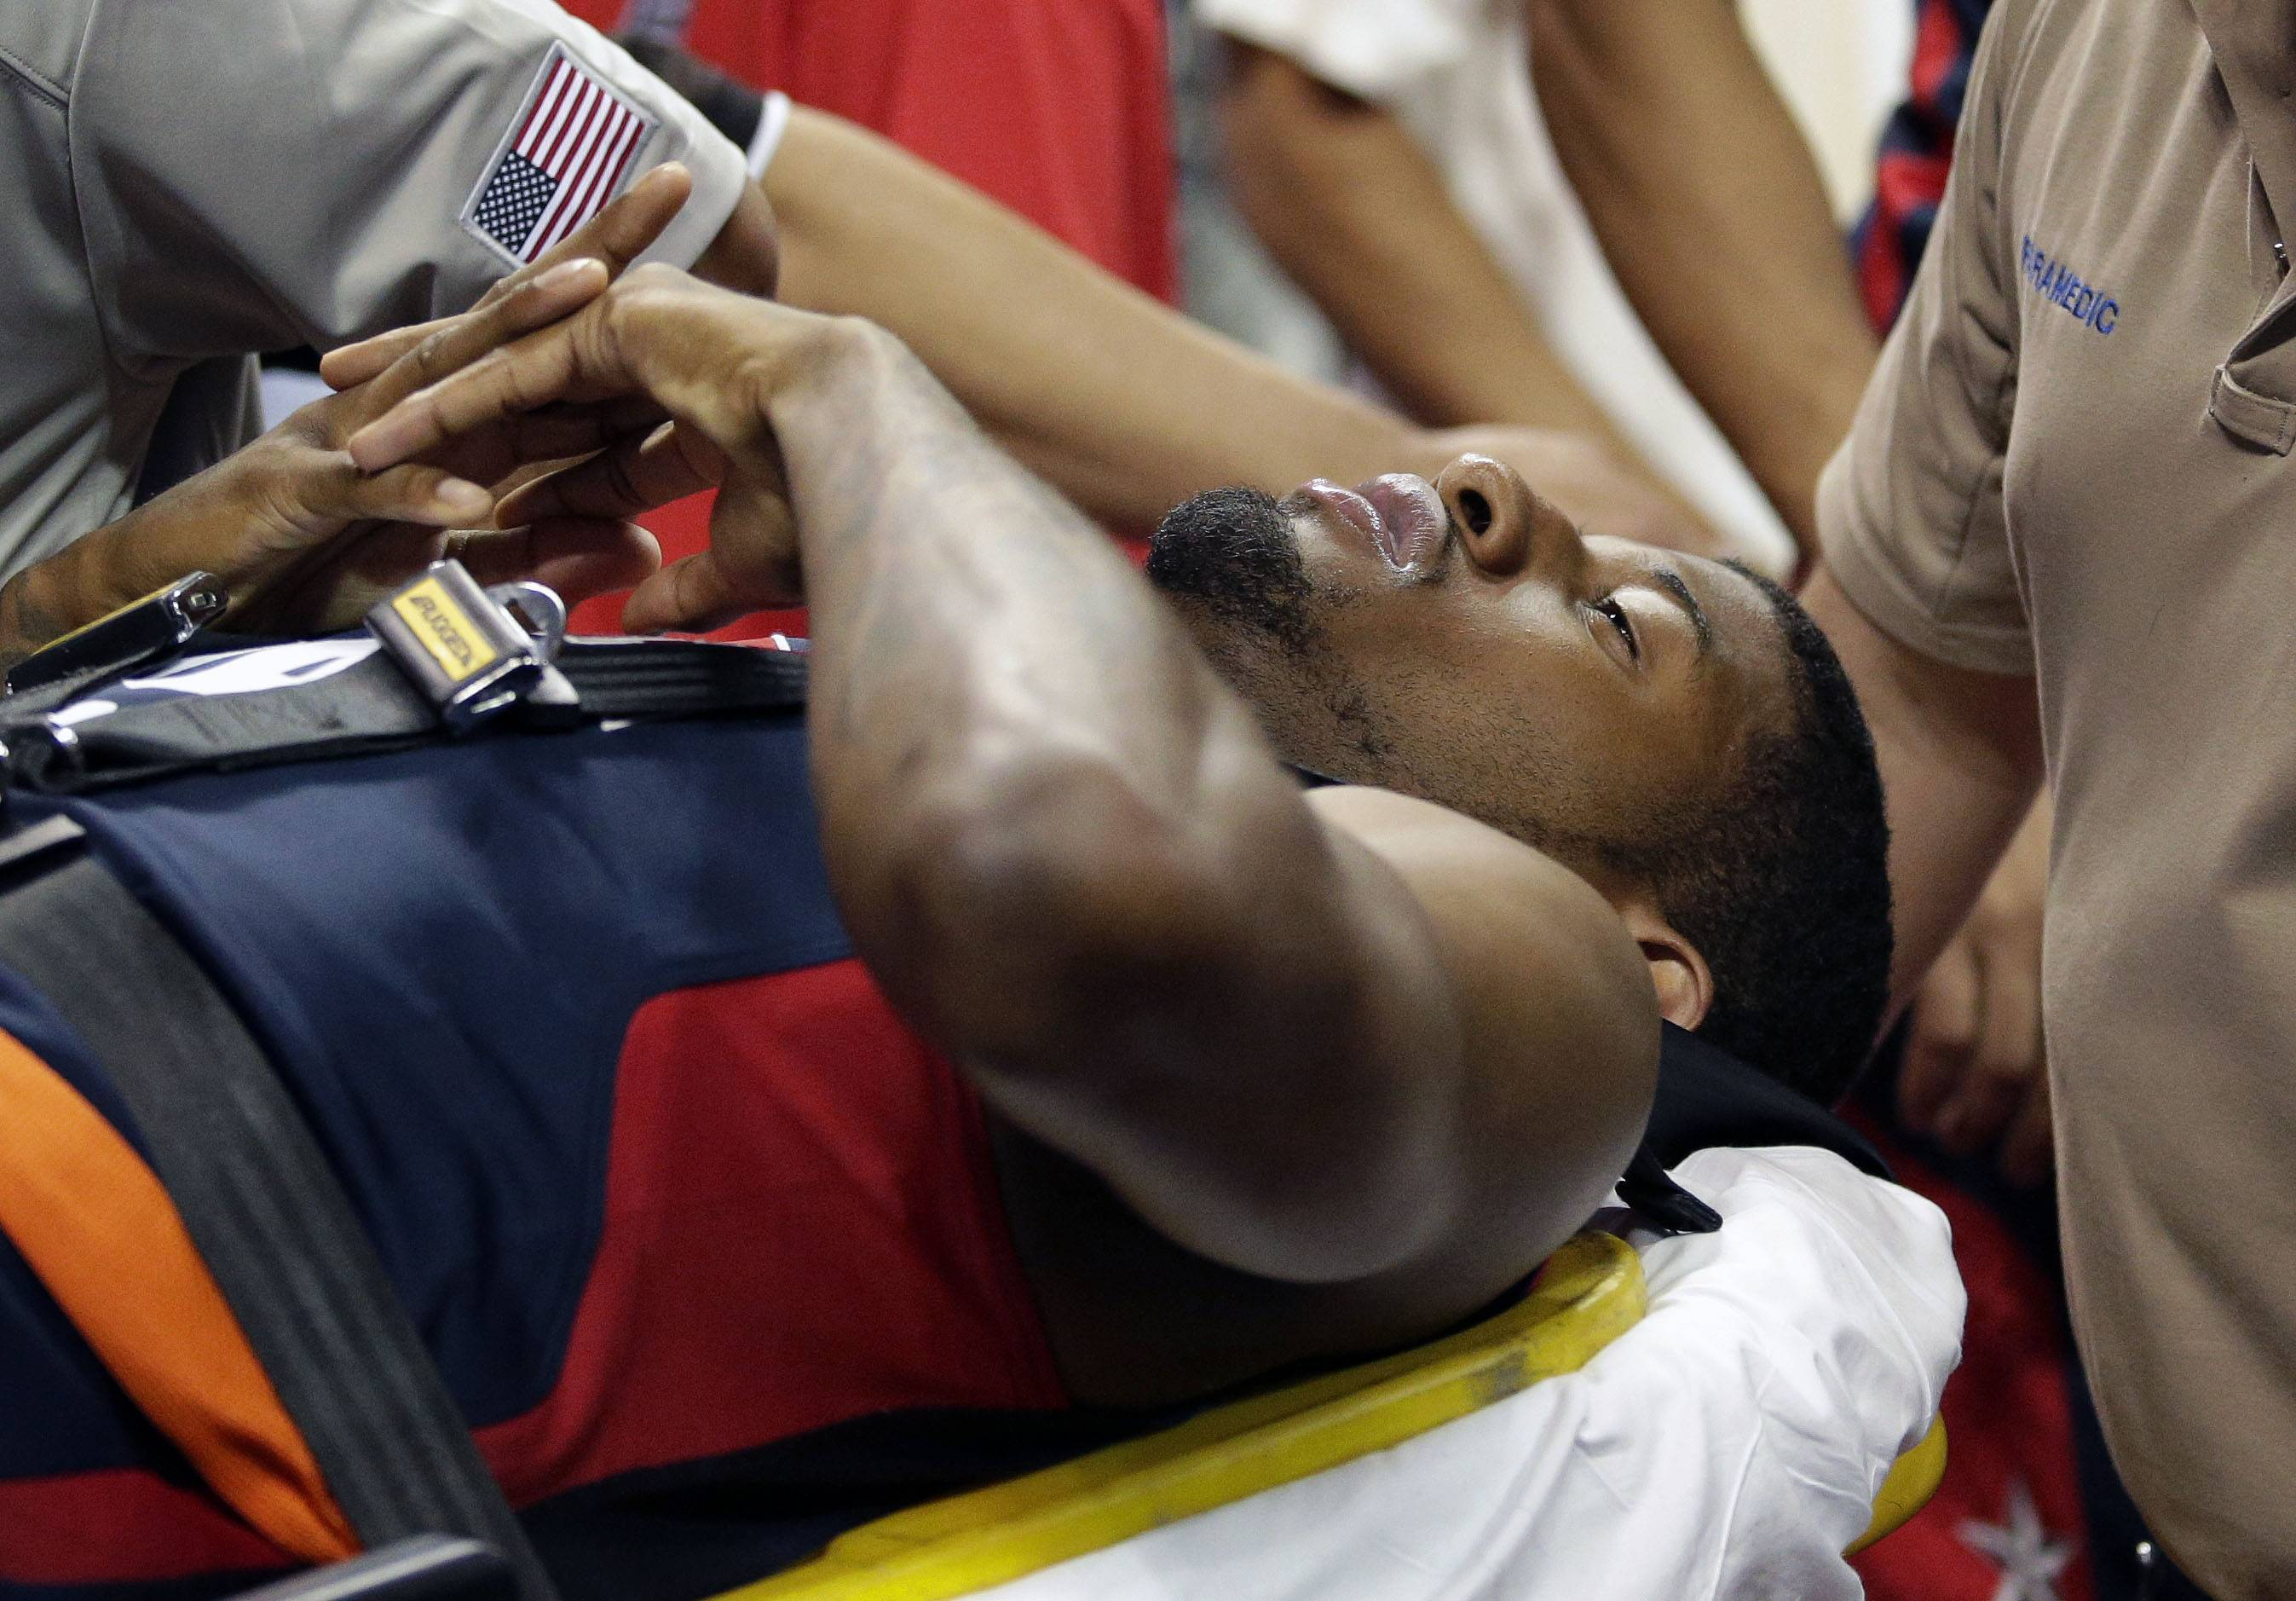 Indiana Pacers' Paul George is taken off the court after he was injured during the USA Basketball Showcase game Friday, Aug. 1, 2014, in Las Vegas.